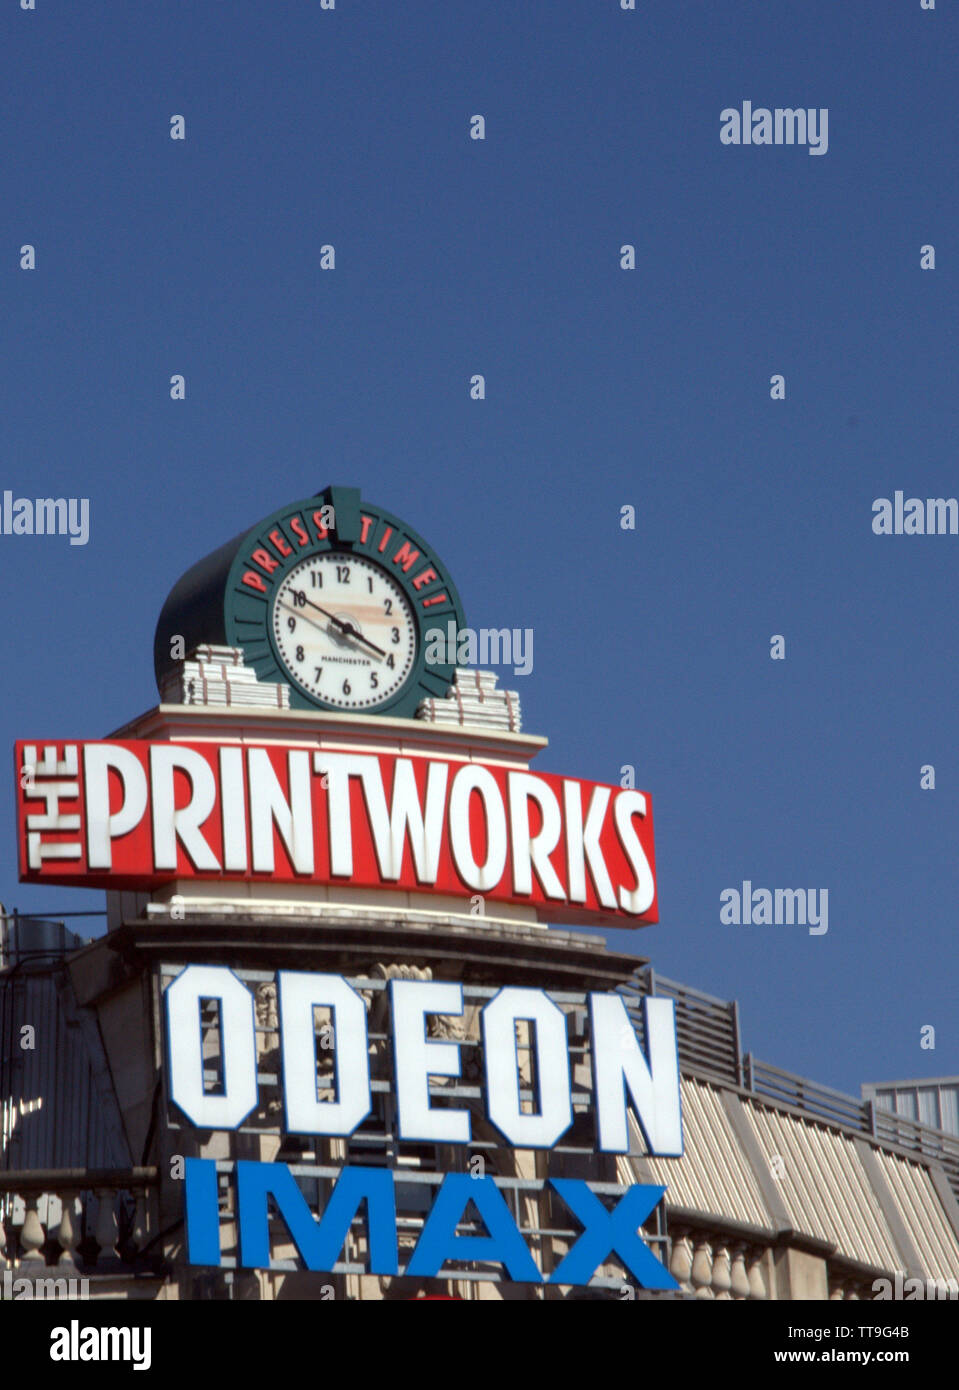 Printworks sign and clock on the roof of the Printworks entertainment complex in city centre Manchester, uk - Stock Image